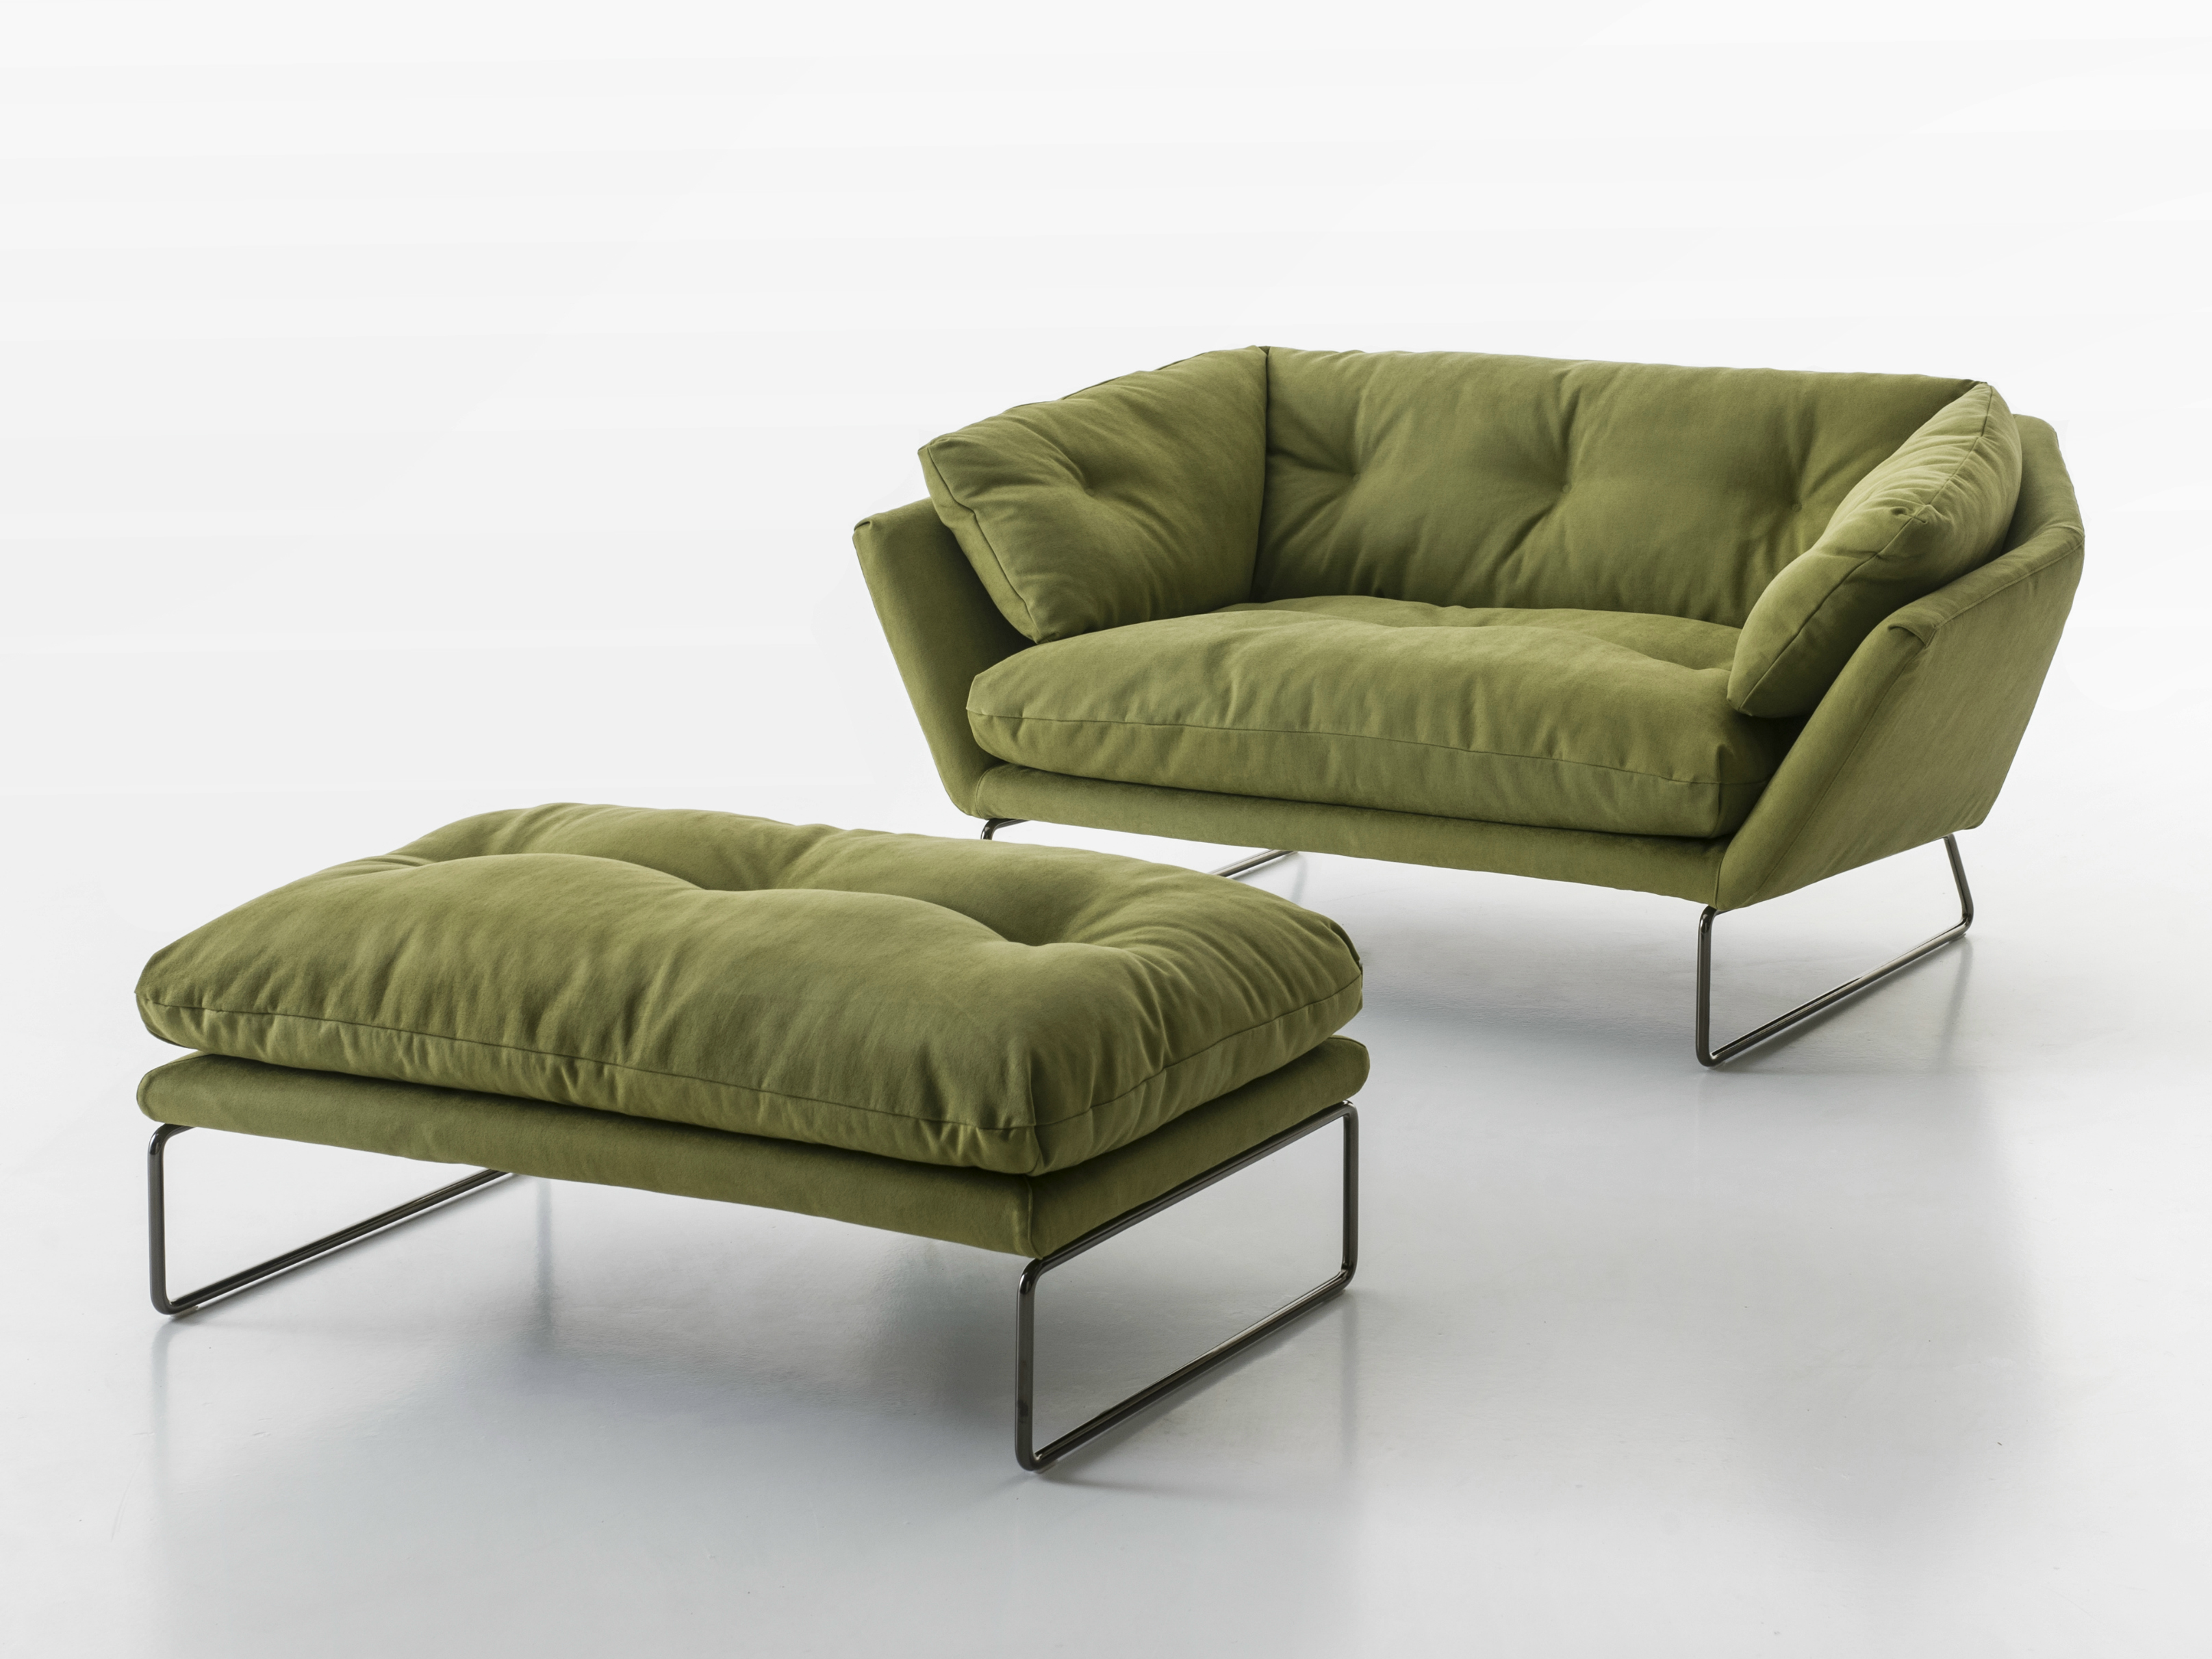 New york suite pouf by saba italia design sergio bicego for Sofas in nyc